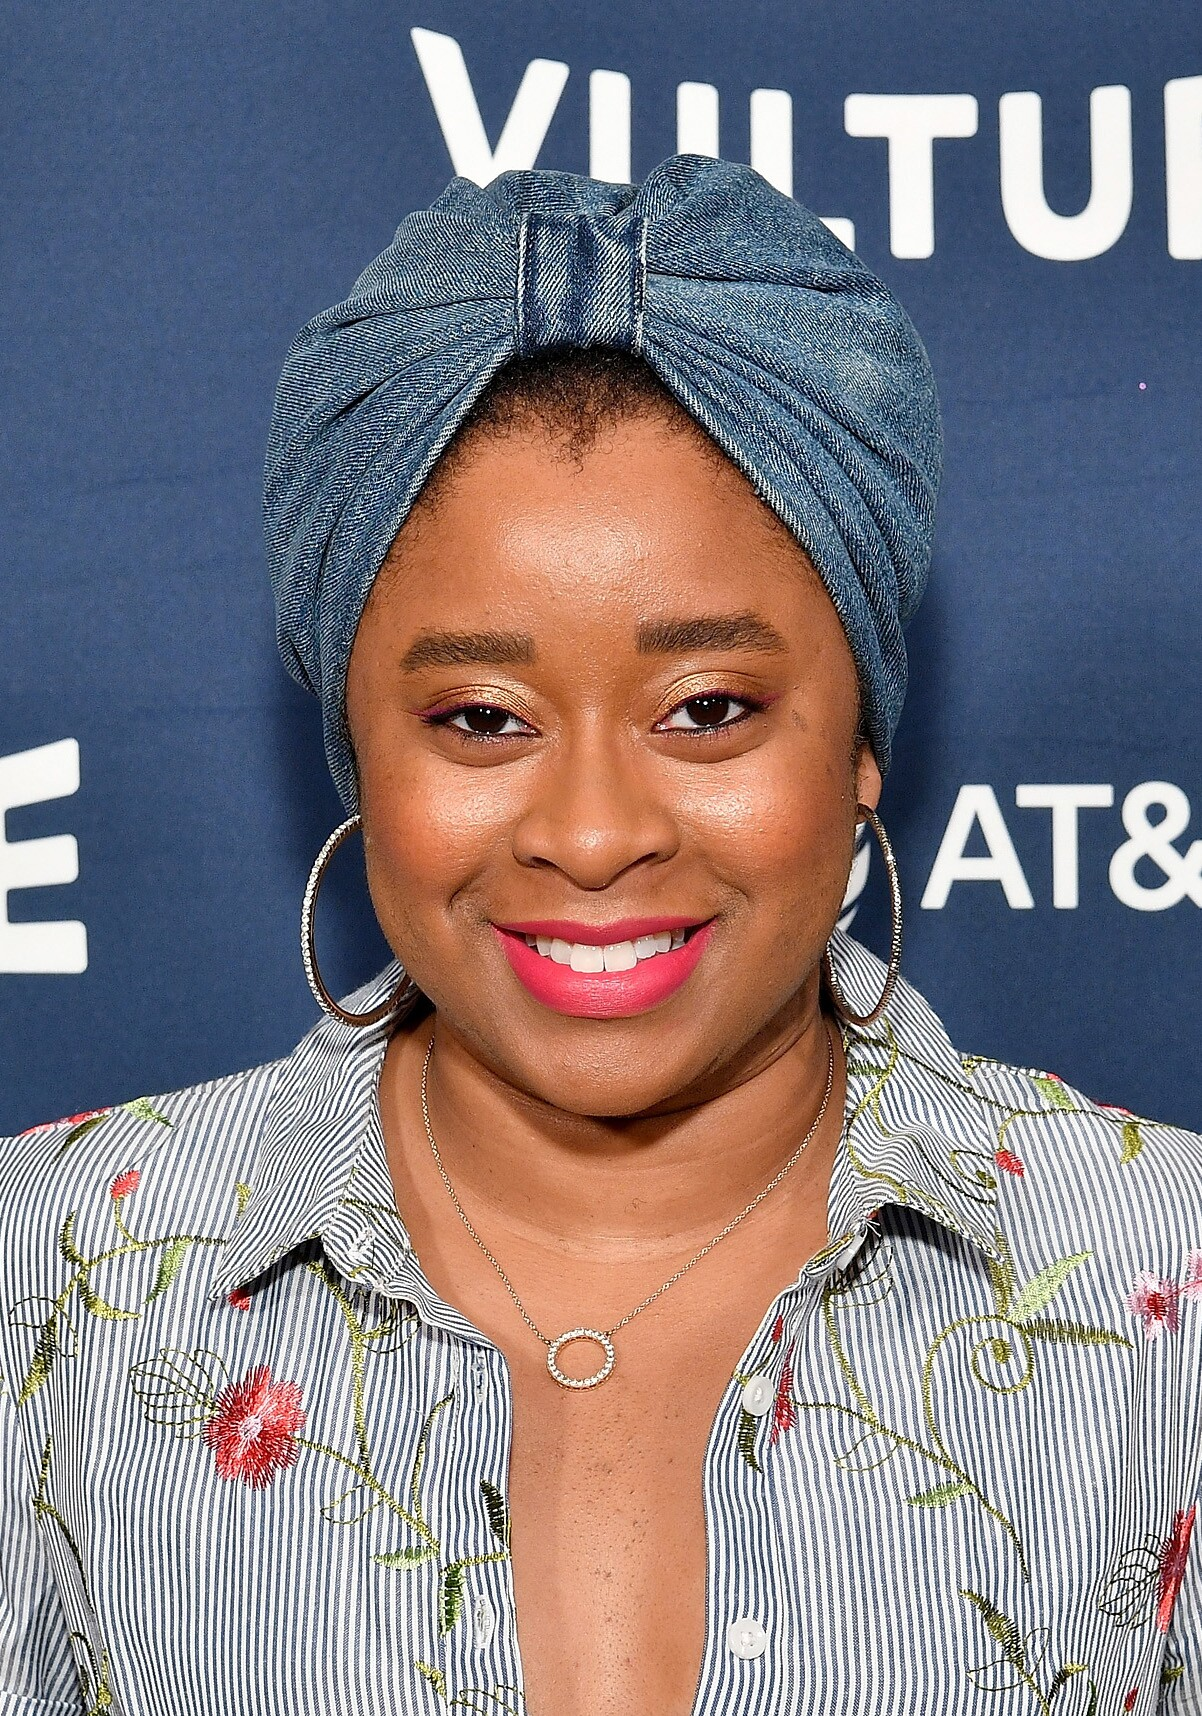 AARP, Sisters, Hoop Earrings, Phoebe Robinson